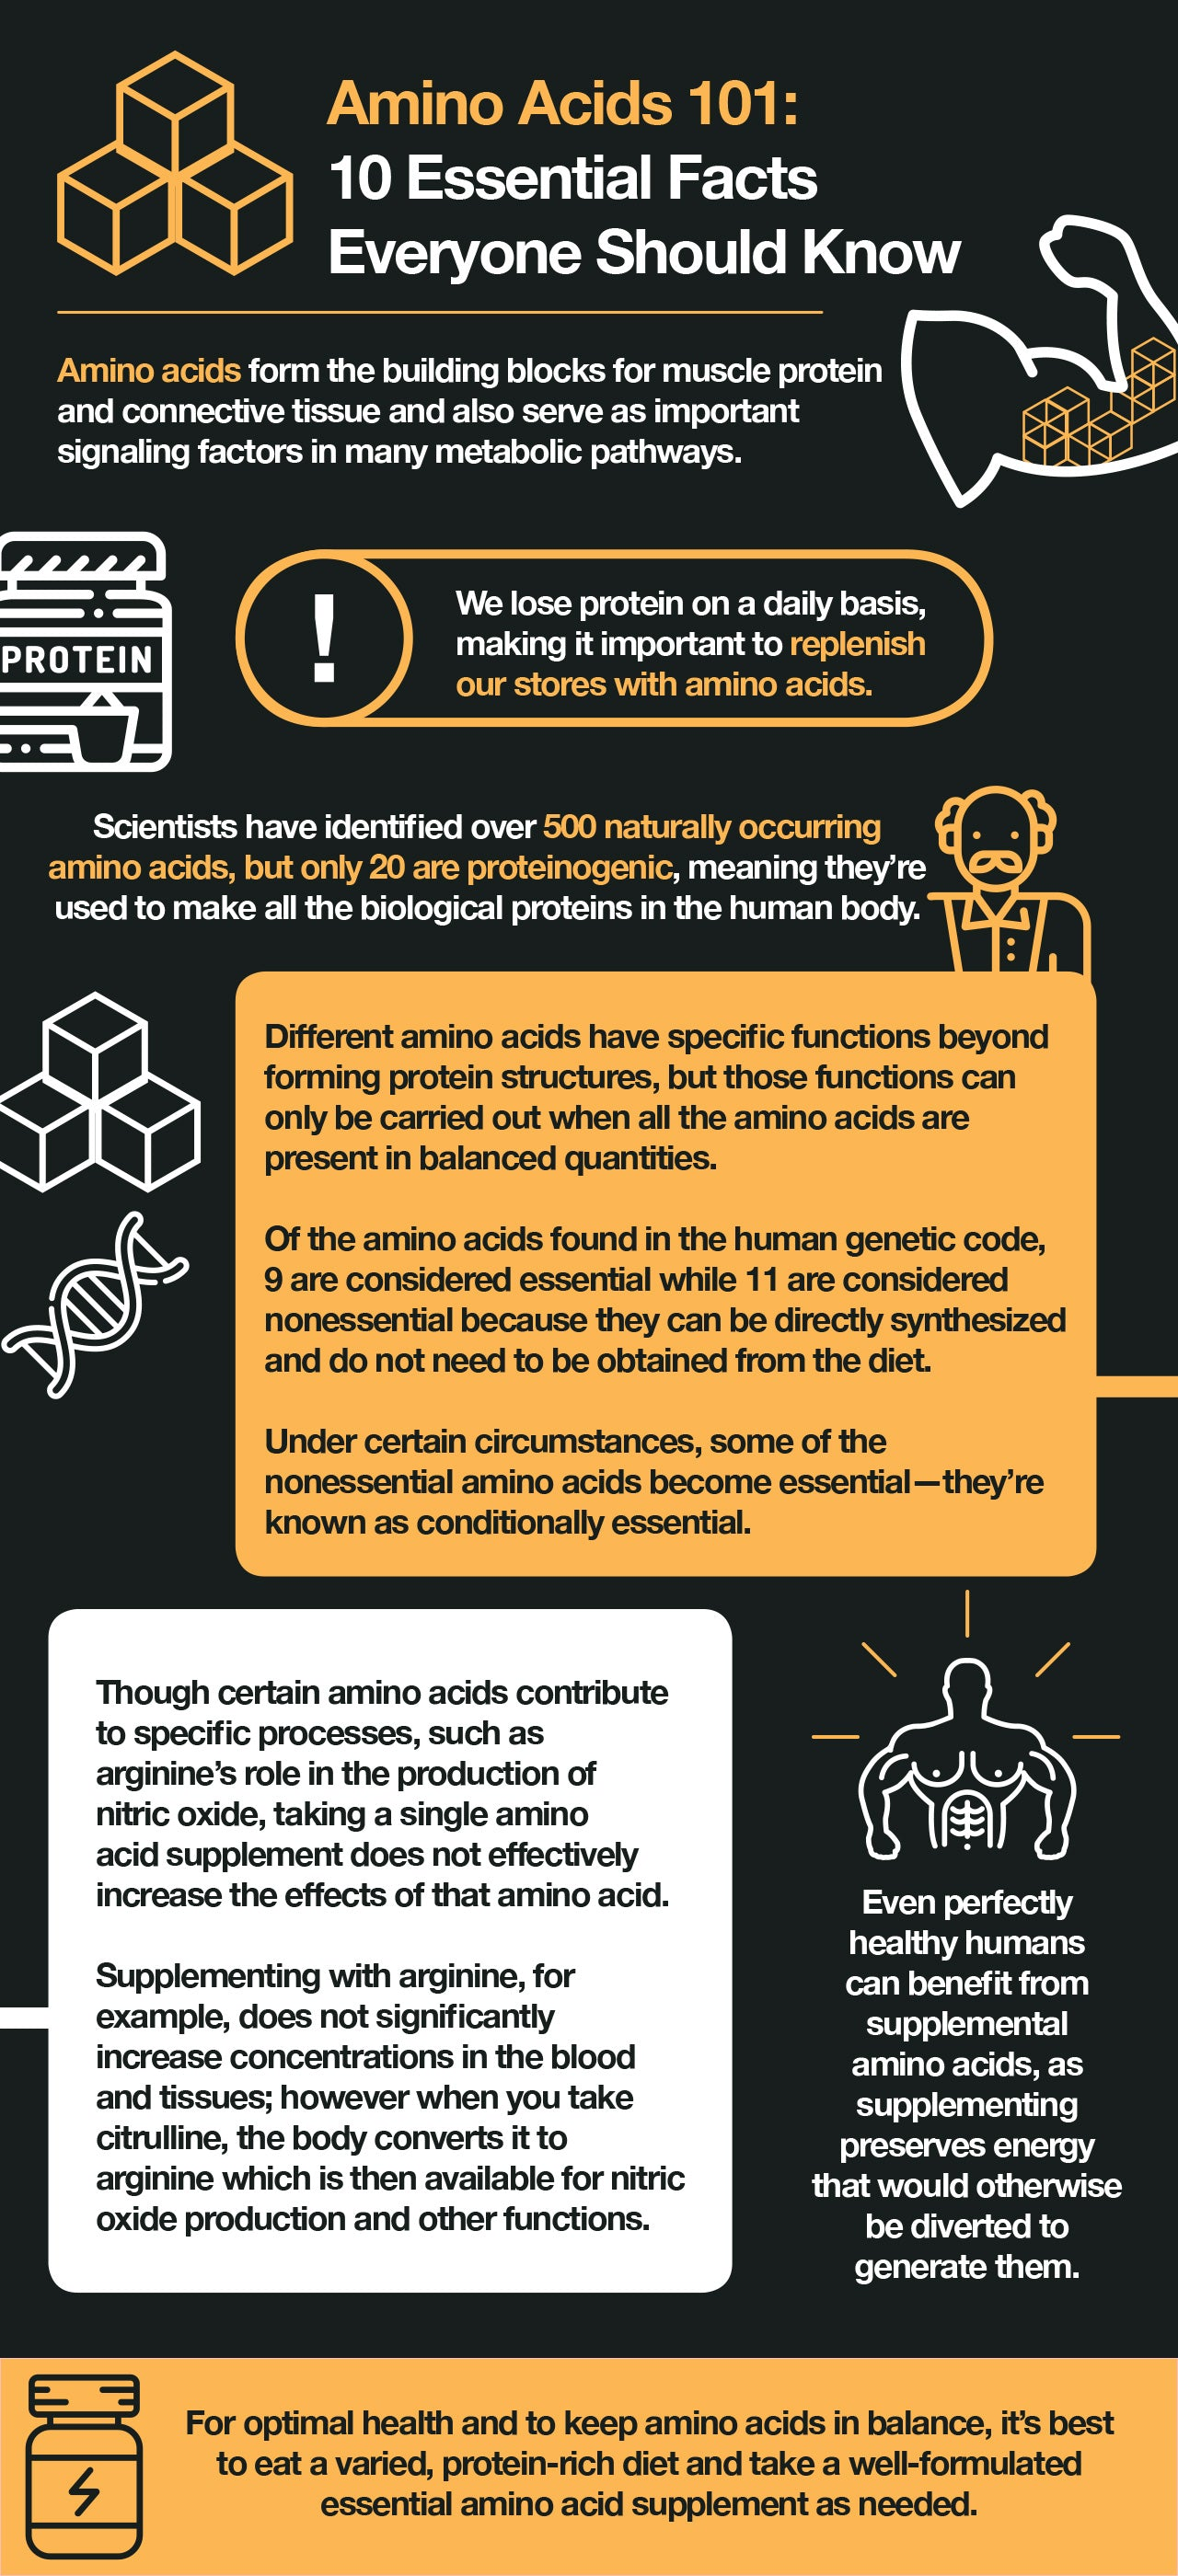 Amino acid facts to know